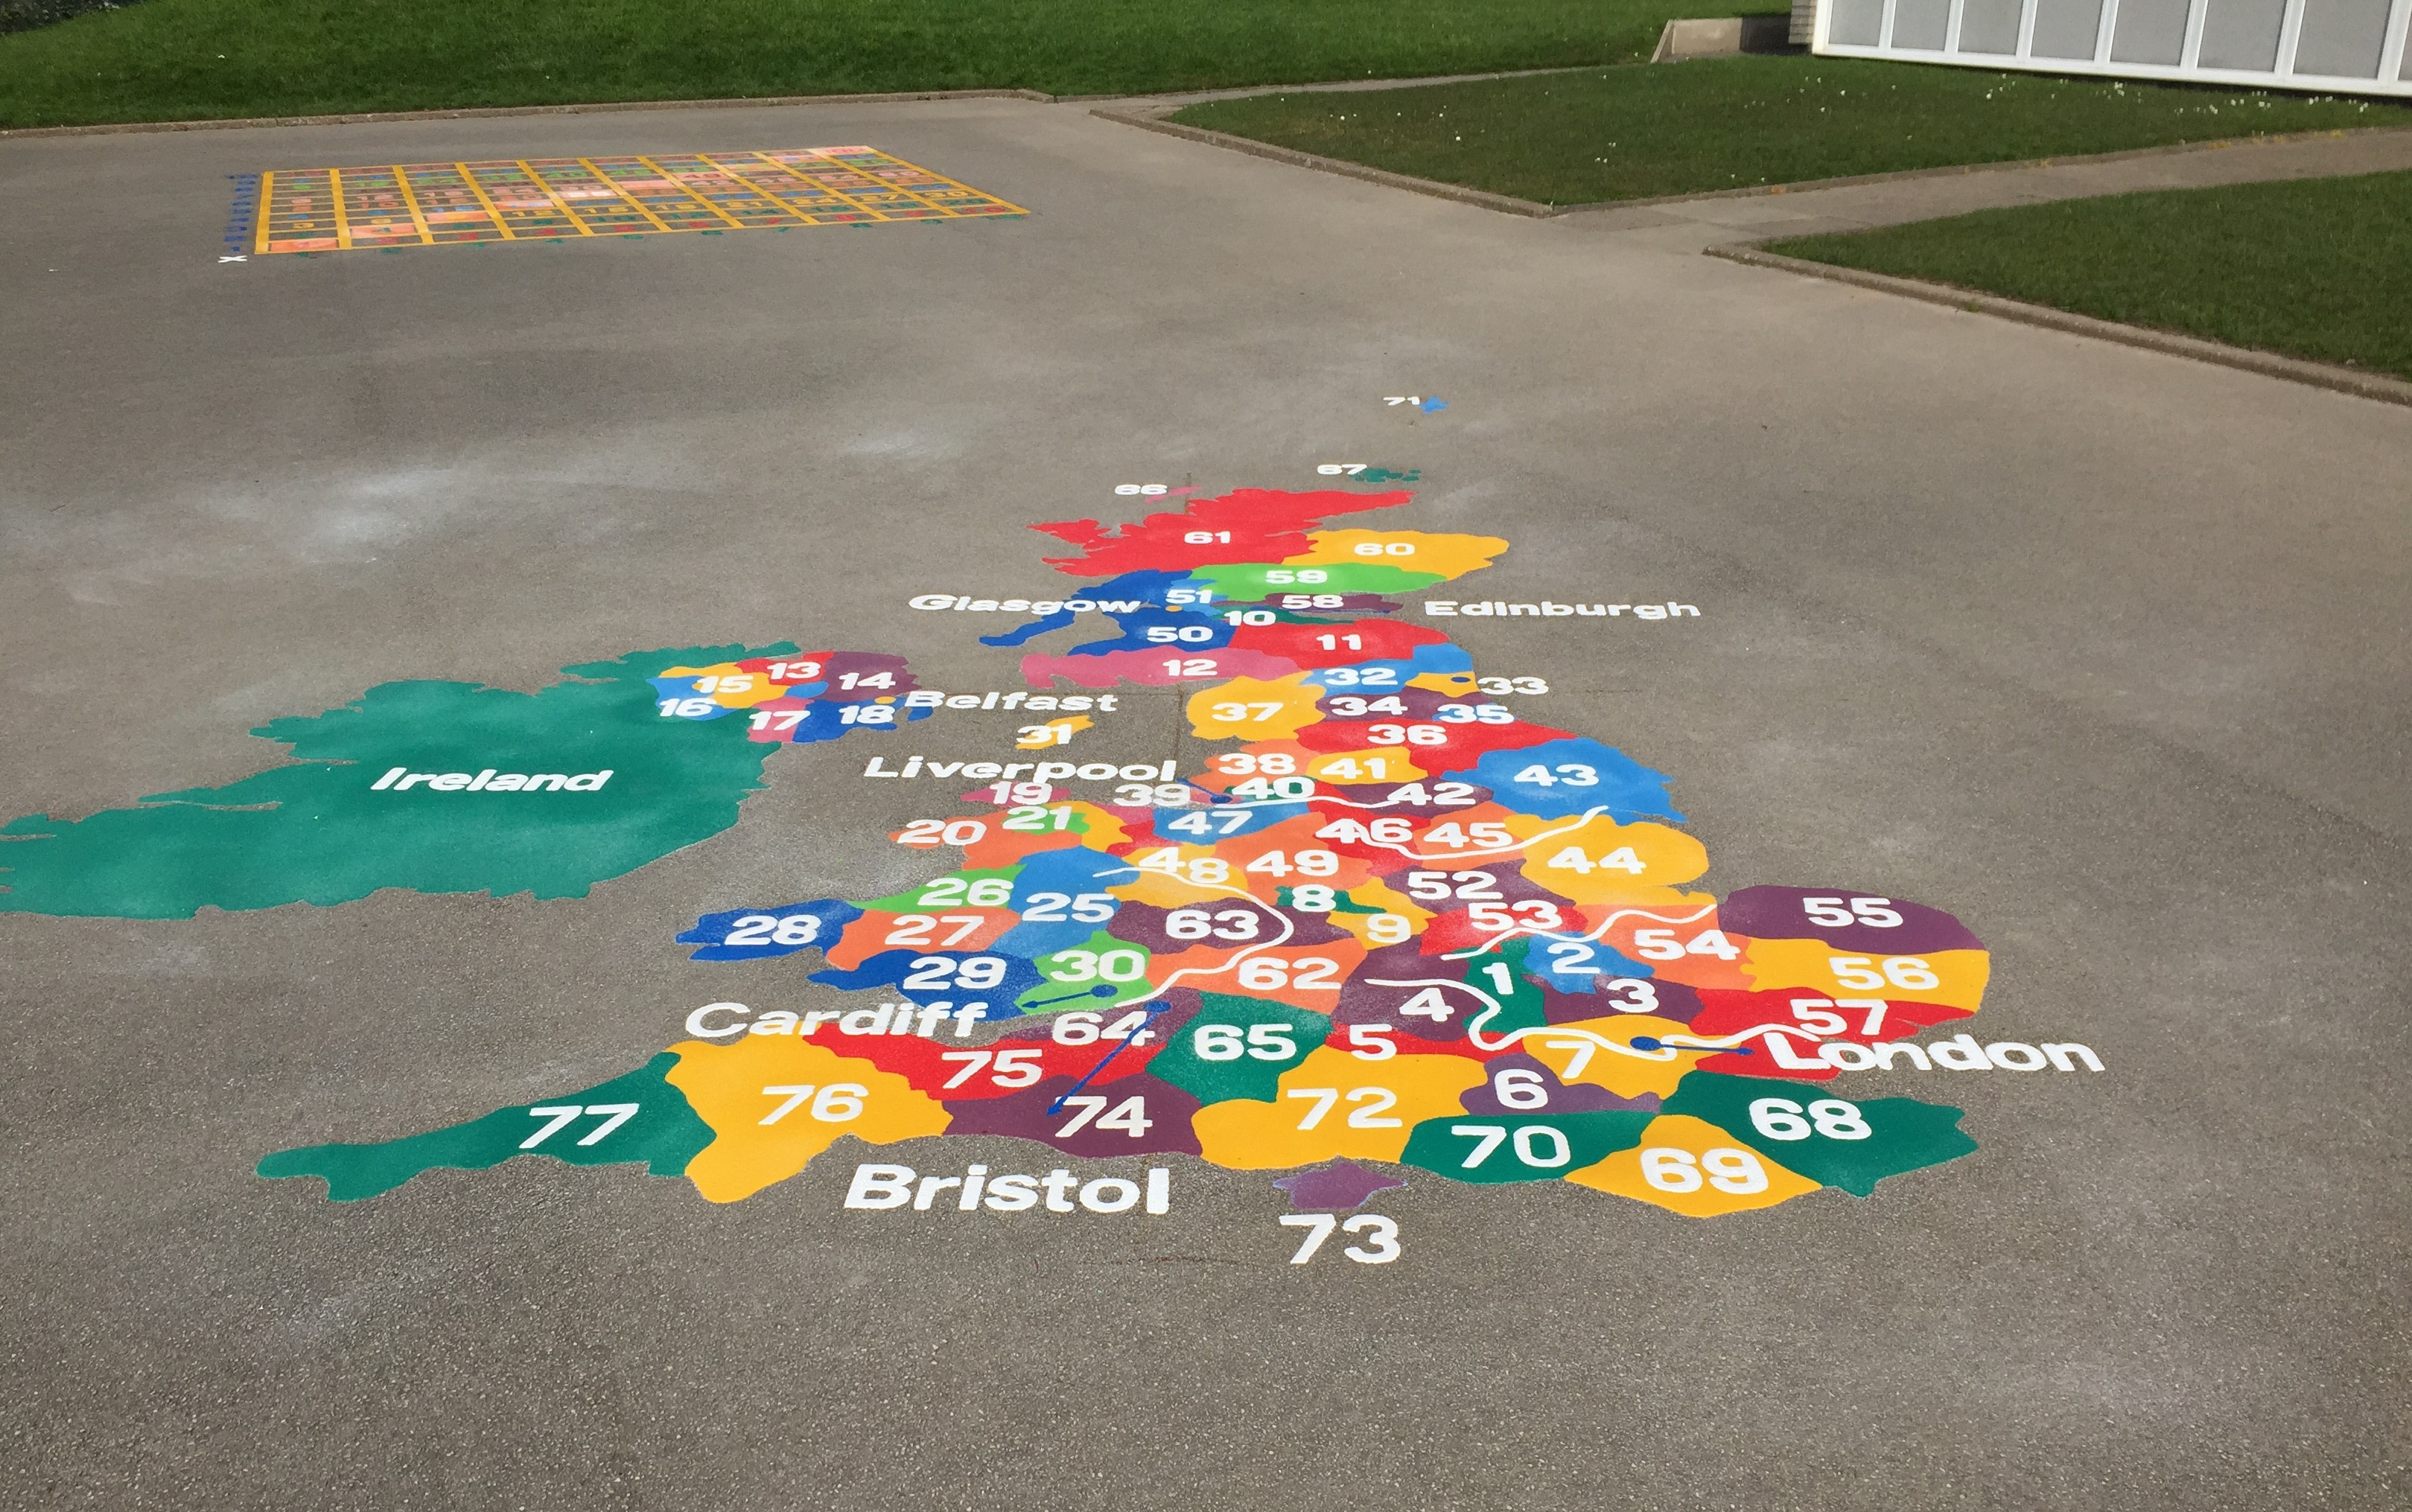 Playground markings new geography curriculum first4playgrounds key stage 2 world map ks2 uk map with counties playground markings gumiabroncs Choice Image